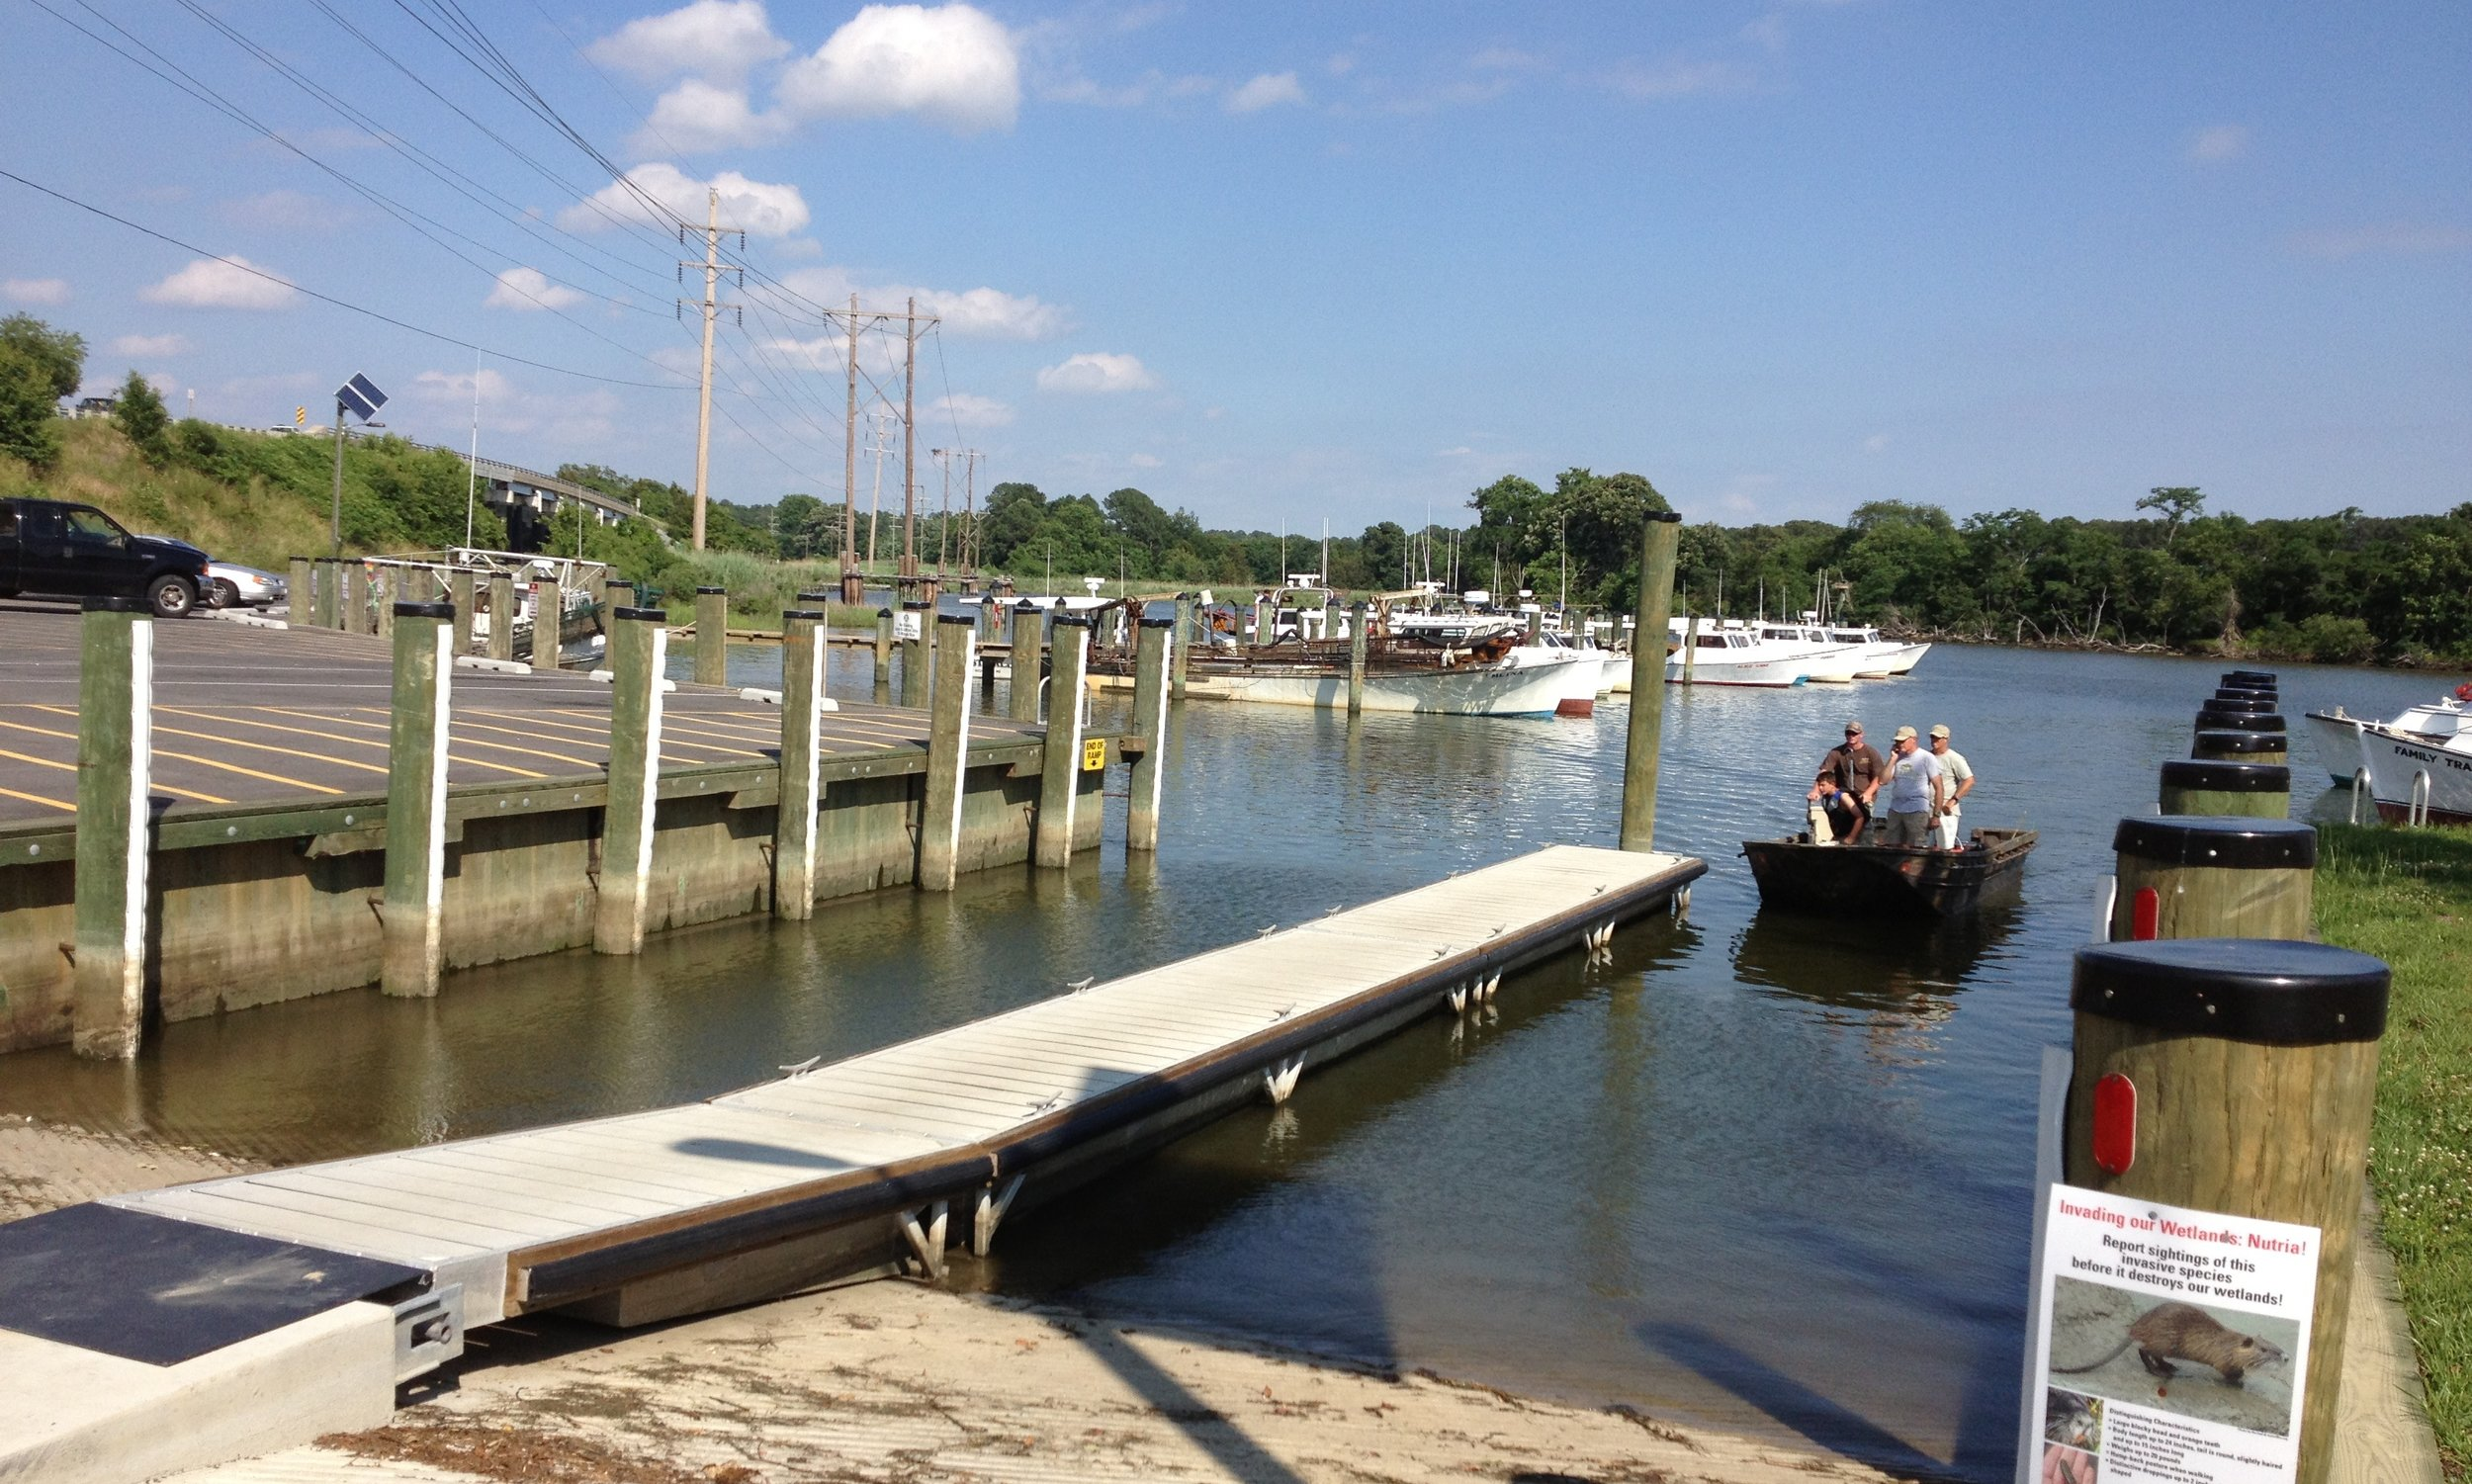 Talbot County Boating Access Site Improvements